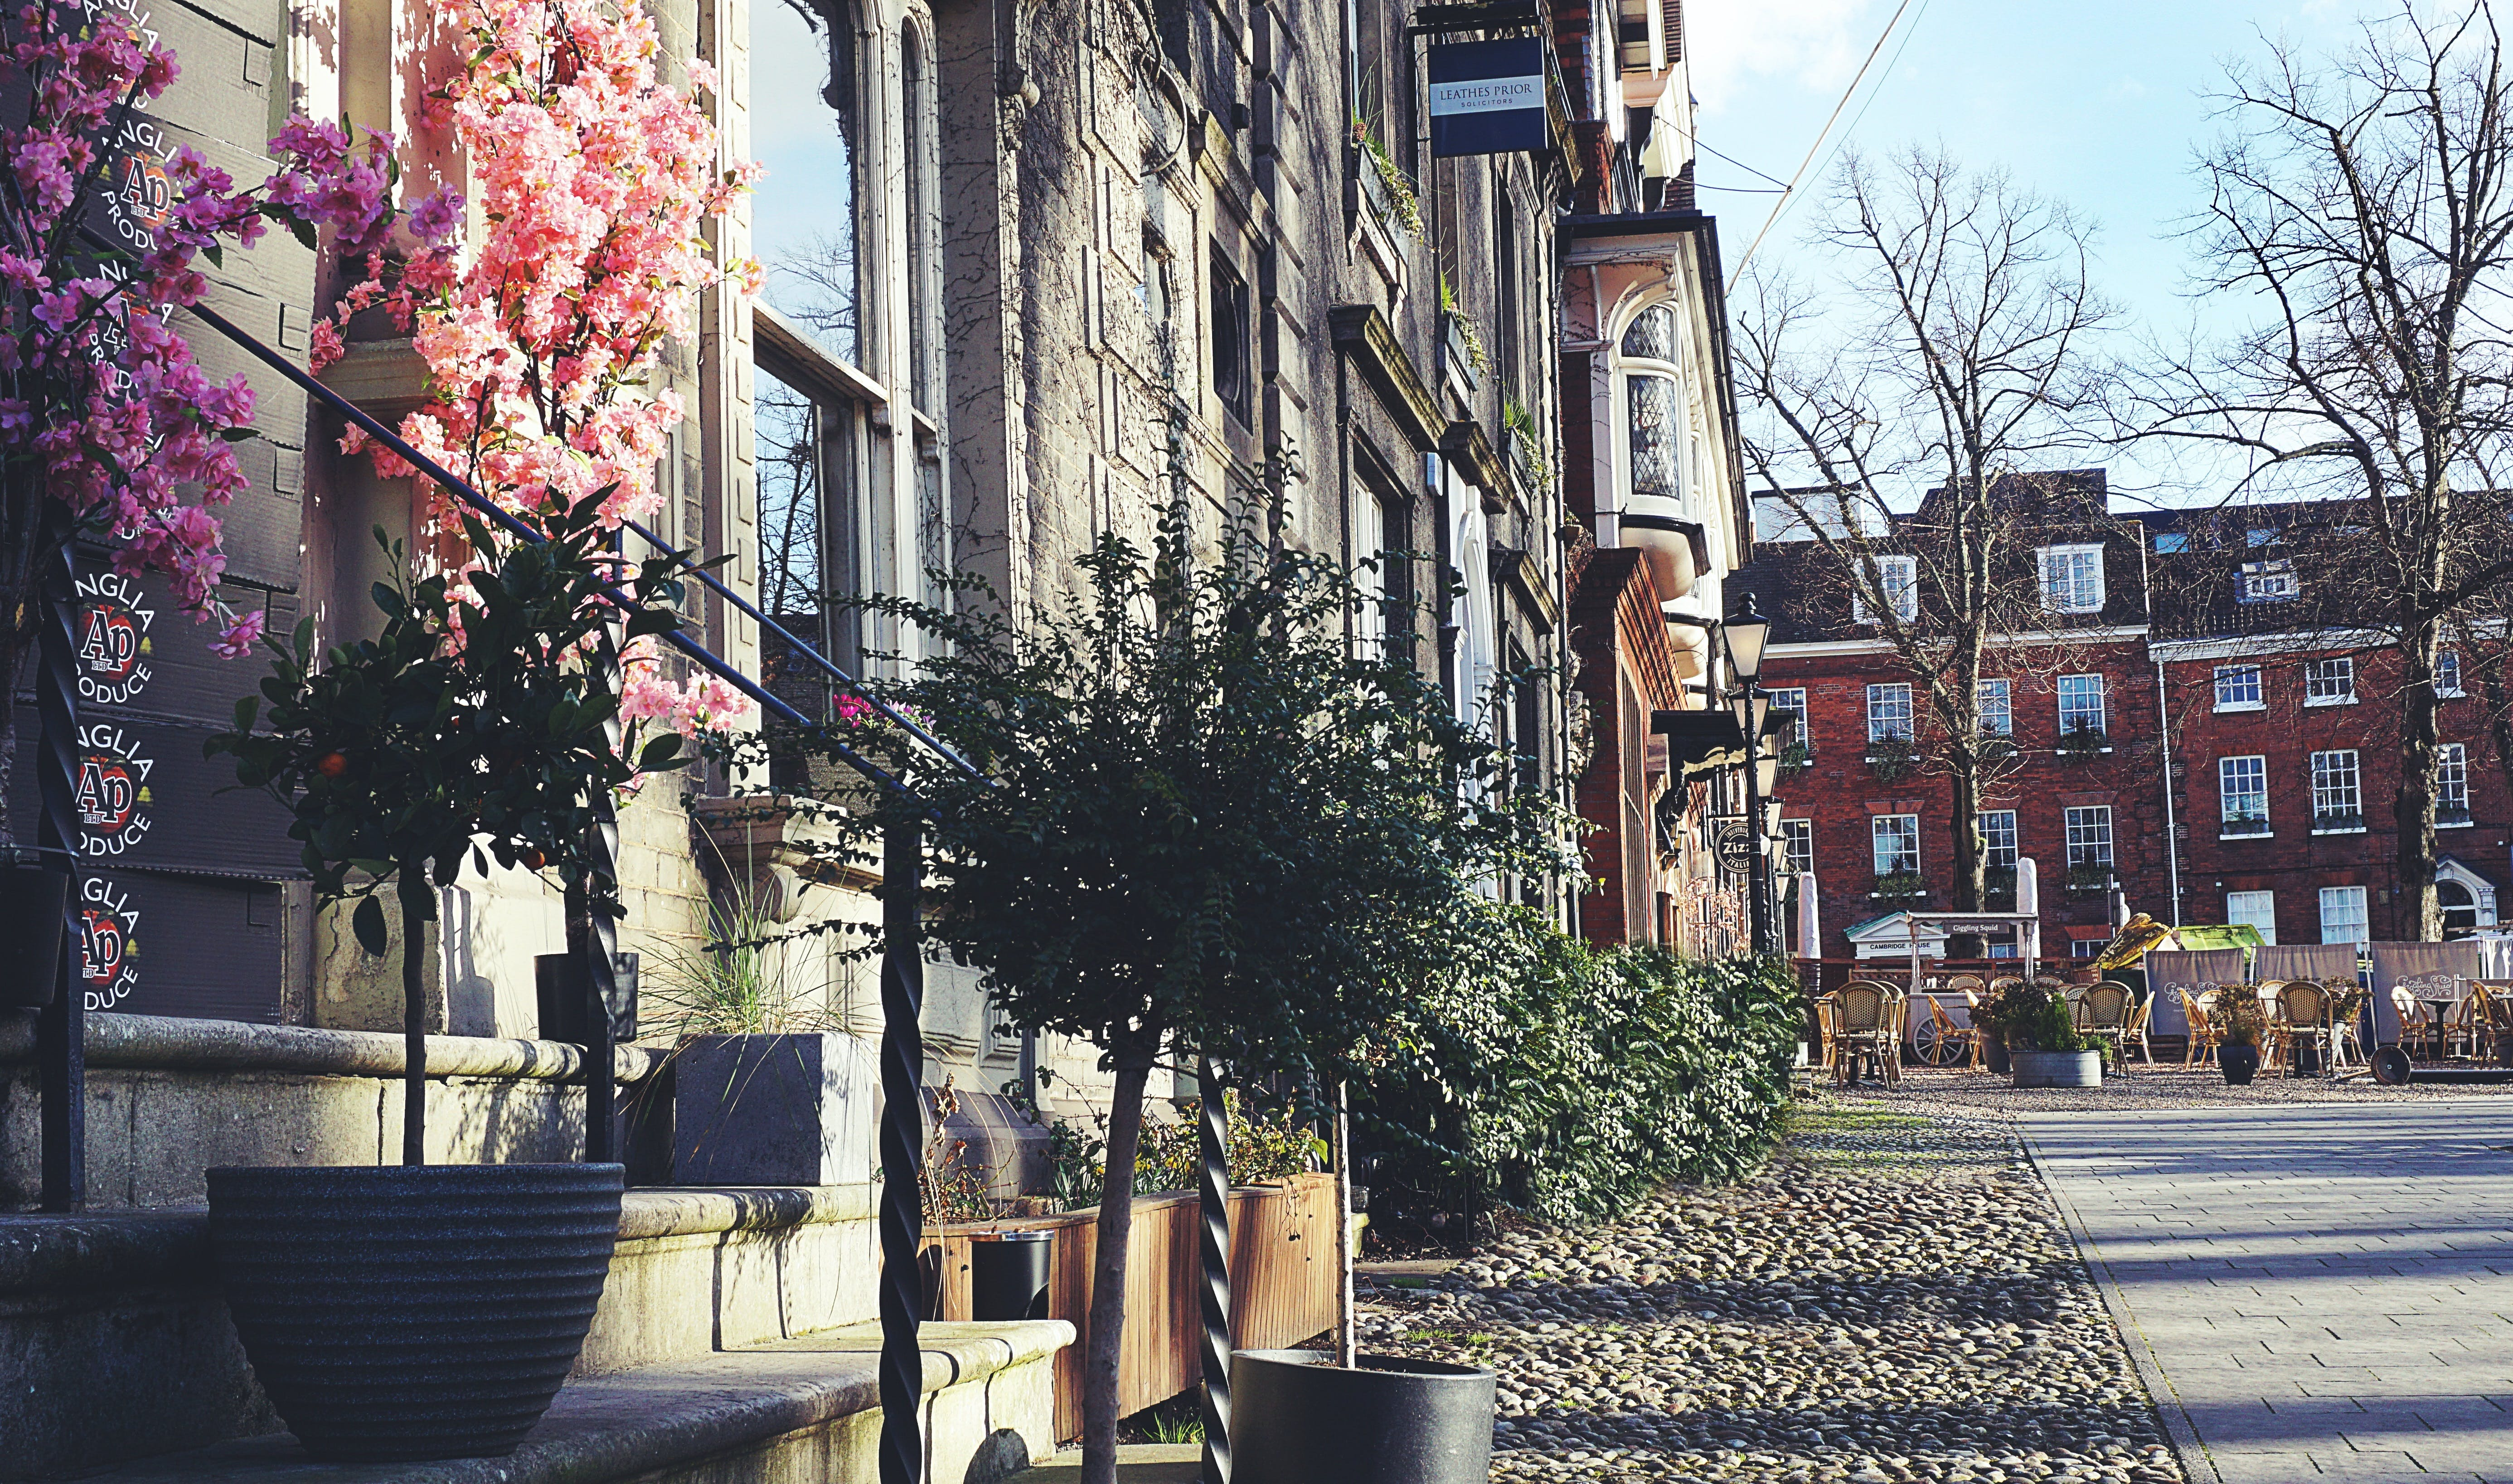 Free stock photo of buildings, city, old city, paved walkway